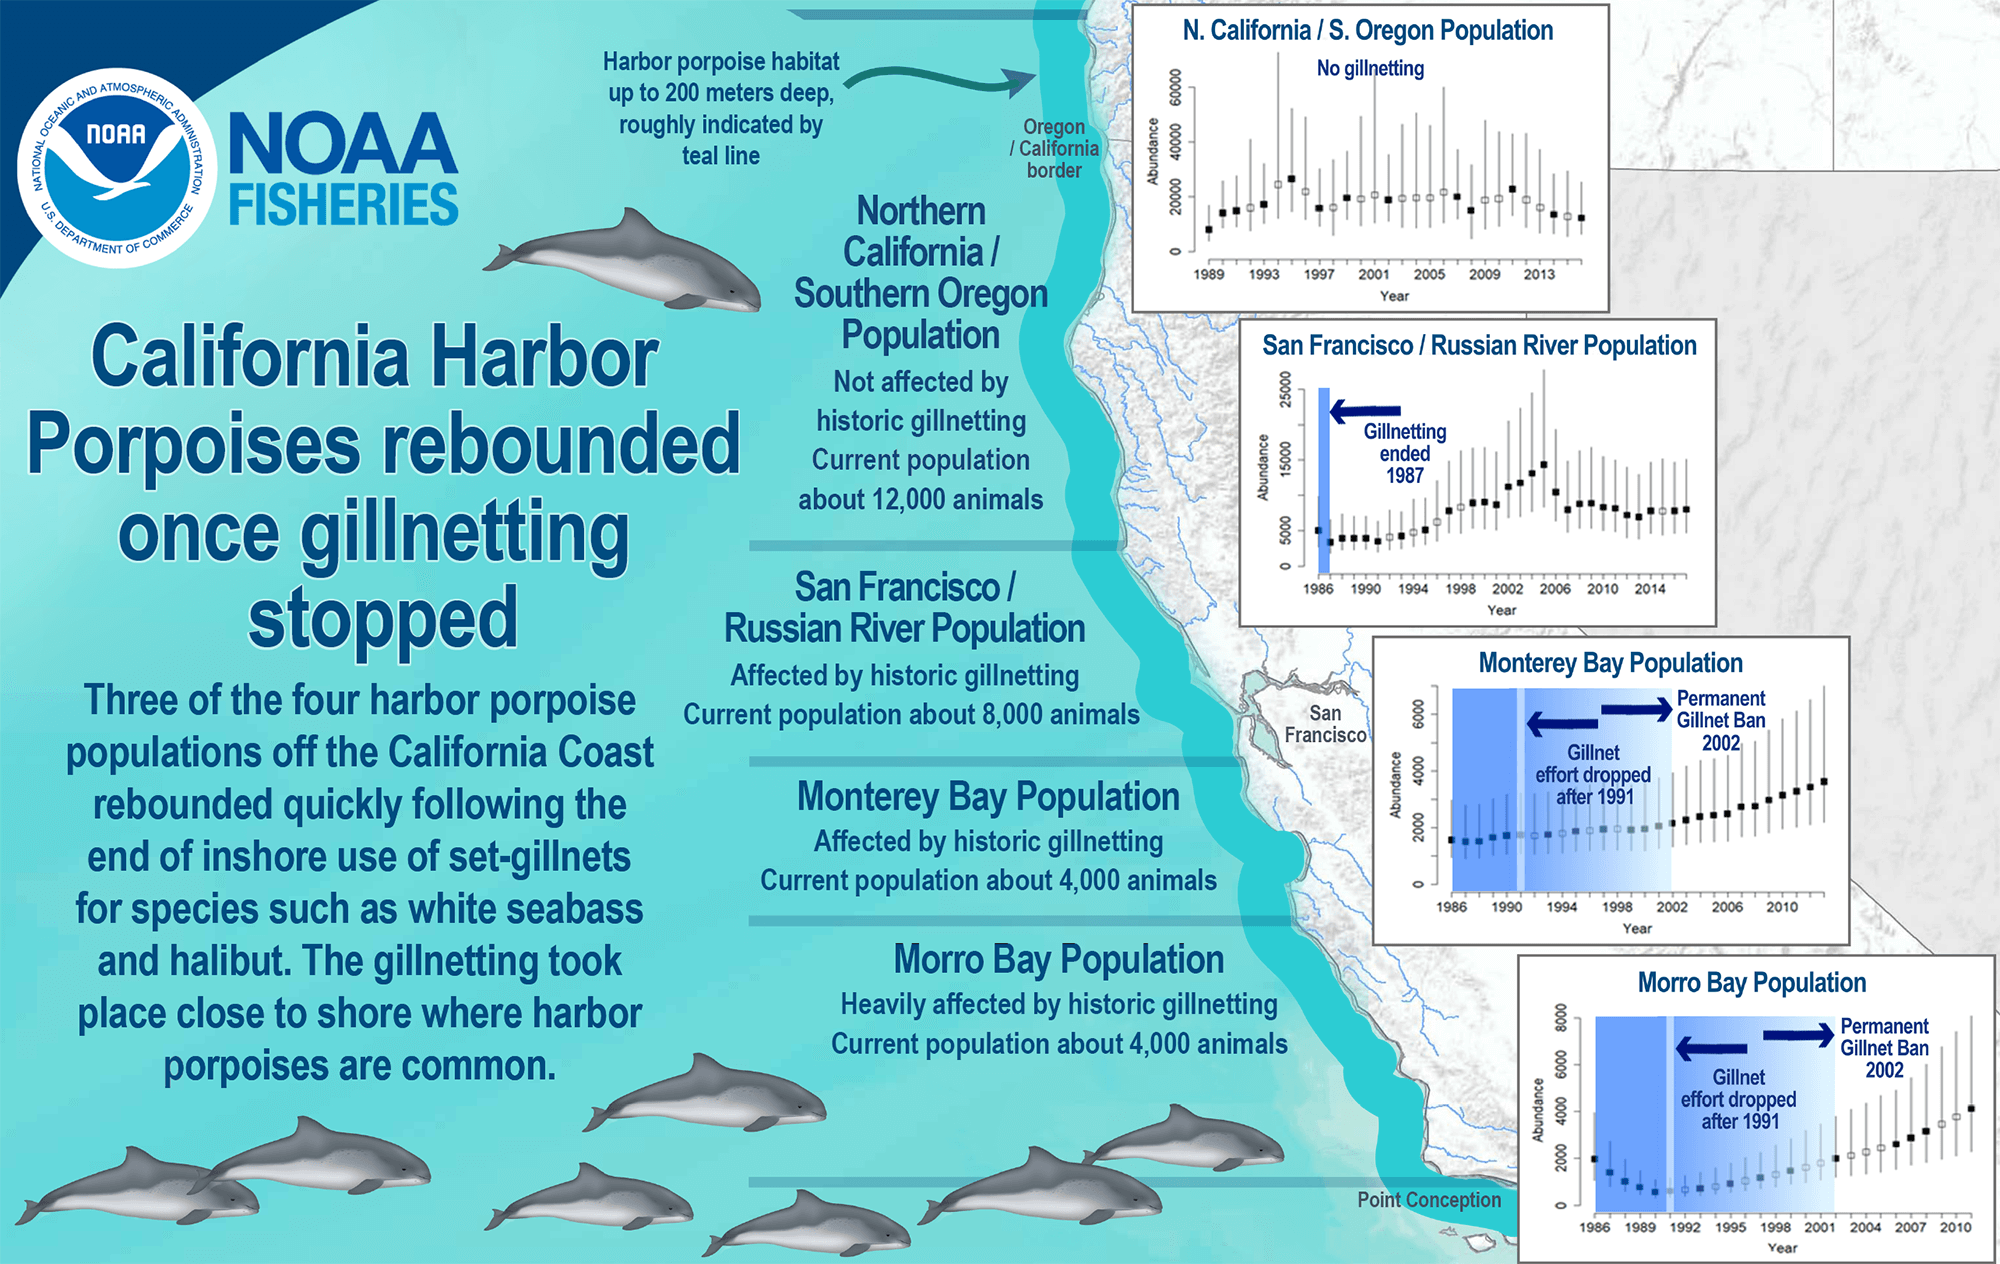 Infographic describing the rebound in the California Harbor Porpoise population